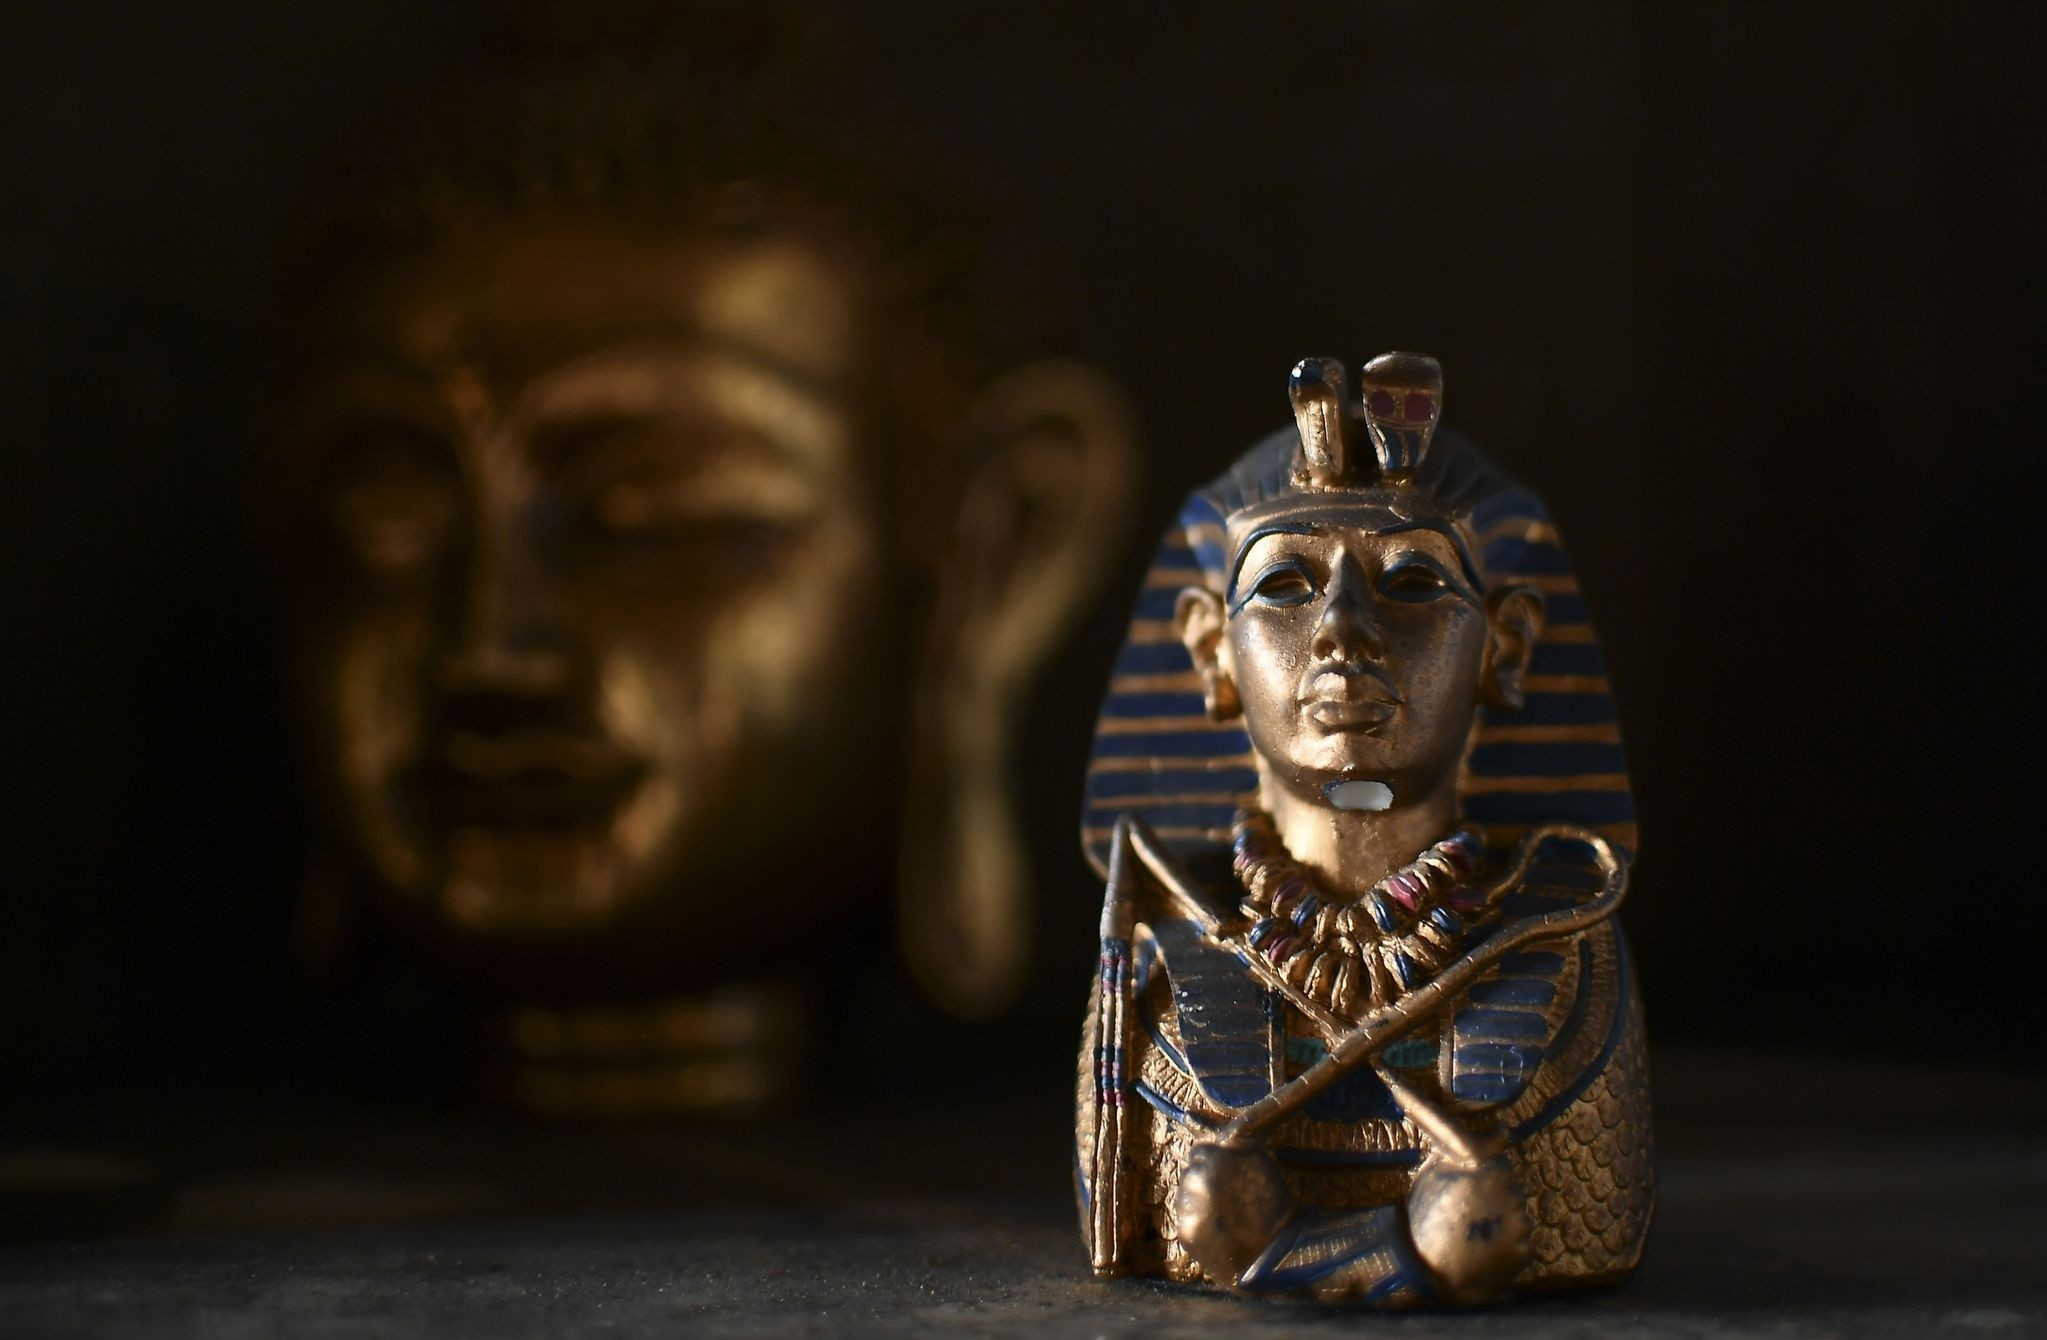 A photo taken on June 24, 2017 shows a small a sculpture of Egyptian pharaoh Tutankhamun at the ,Universal Temple, in Kazan, Russia. (AFP Photo)